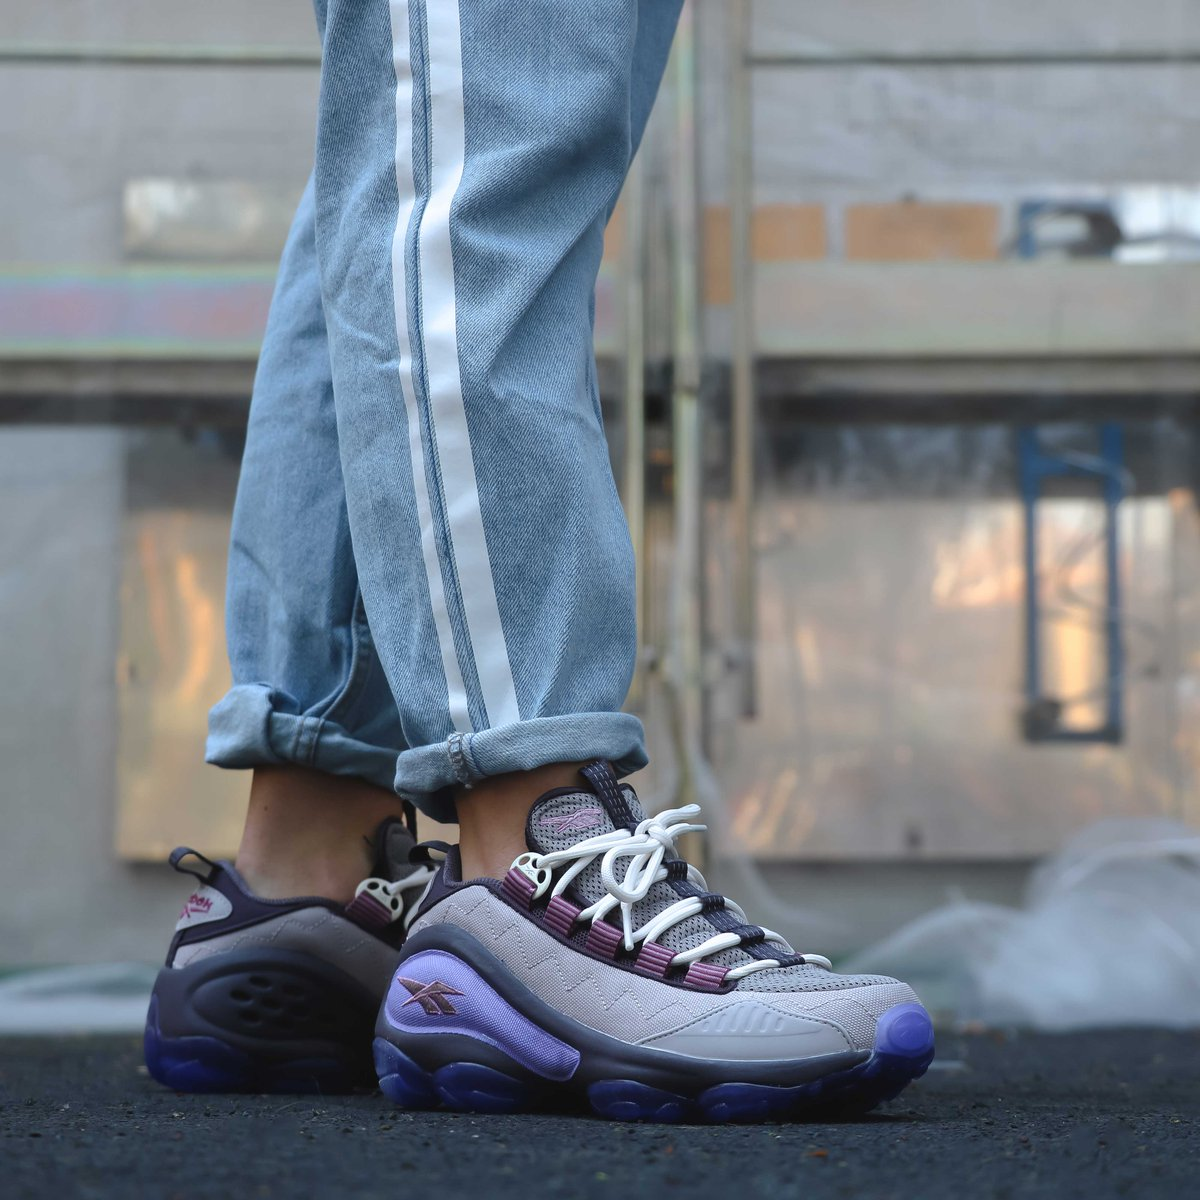 Reebok DMX Run 10 is back! Drops tonight online at midnight CET   in store  tomorrow at 11am CET. Shop   Cop here  http   ow.ly F4ws30kOJee ⠀⠀⠀  reebok  ... c6bc6916f